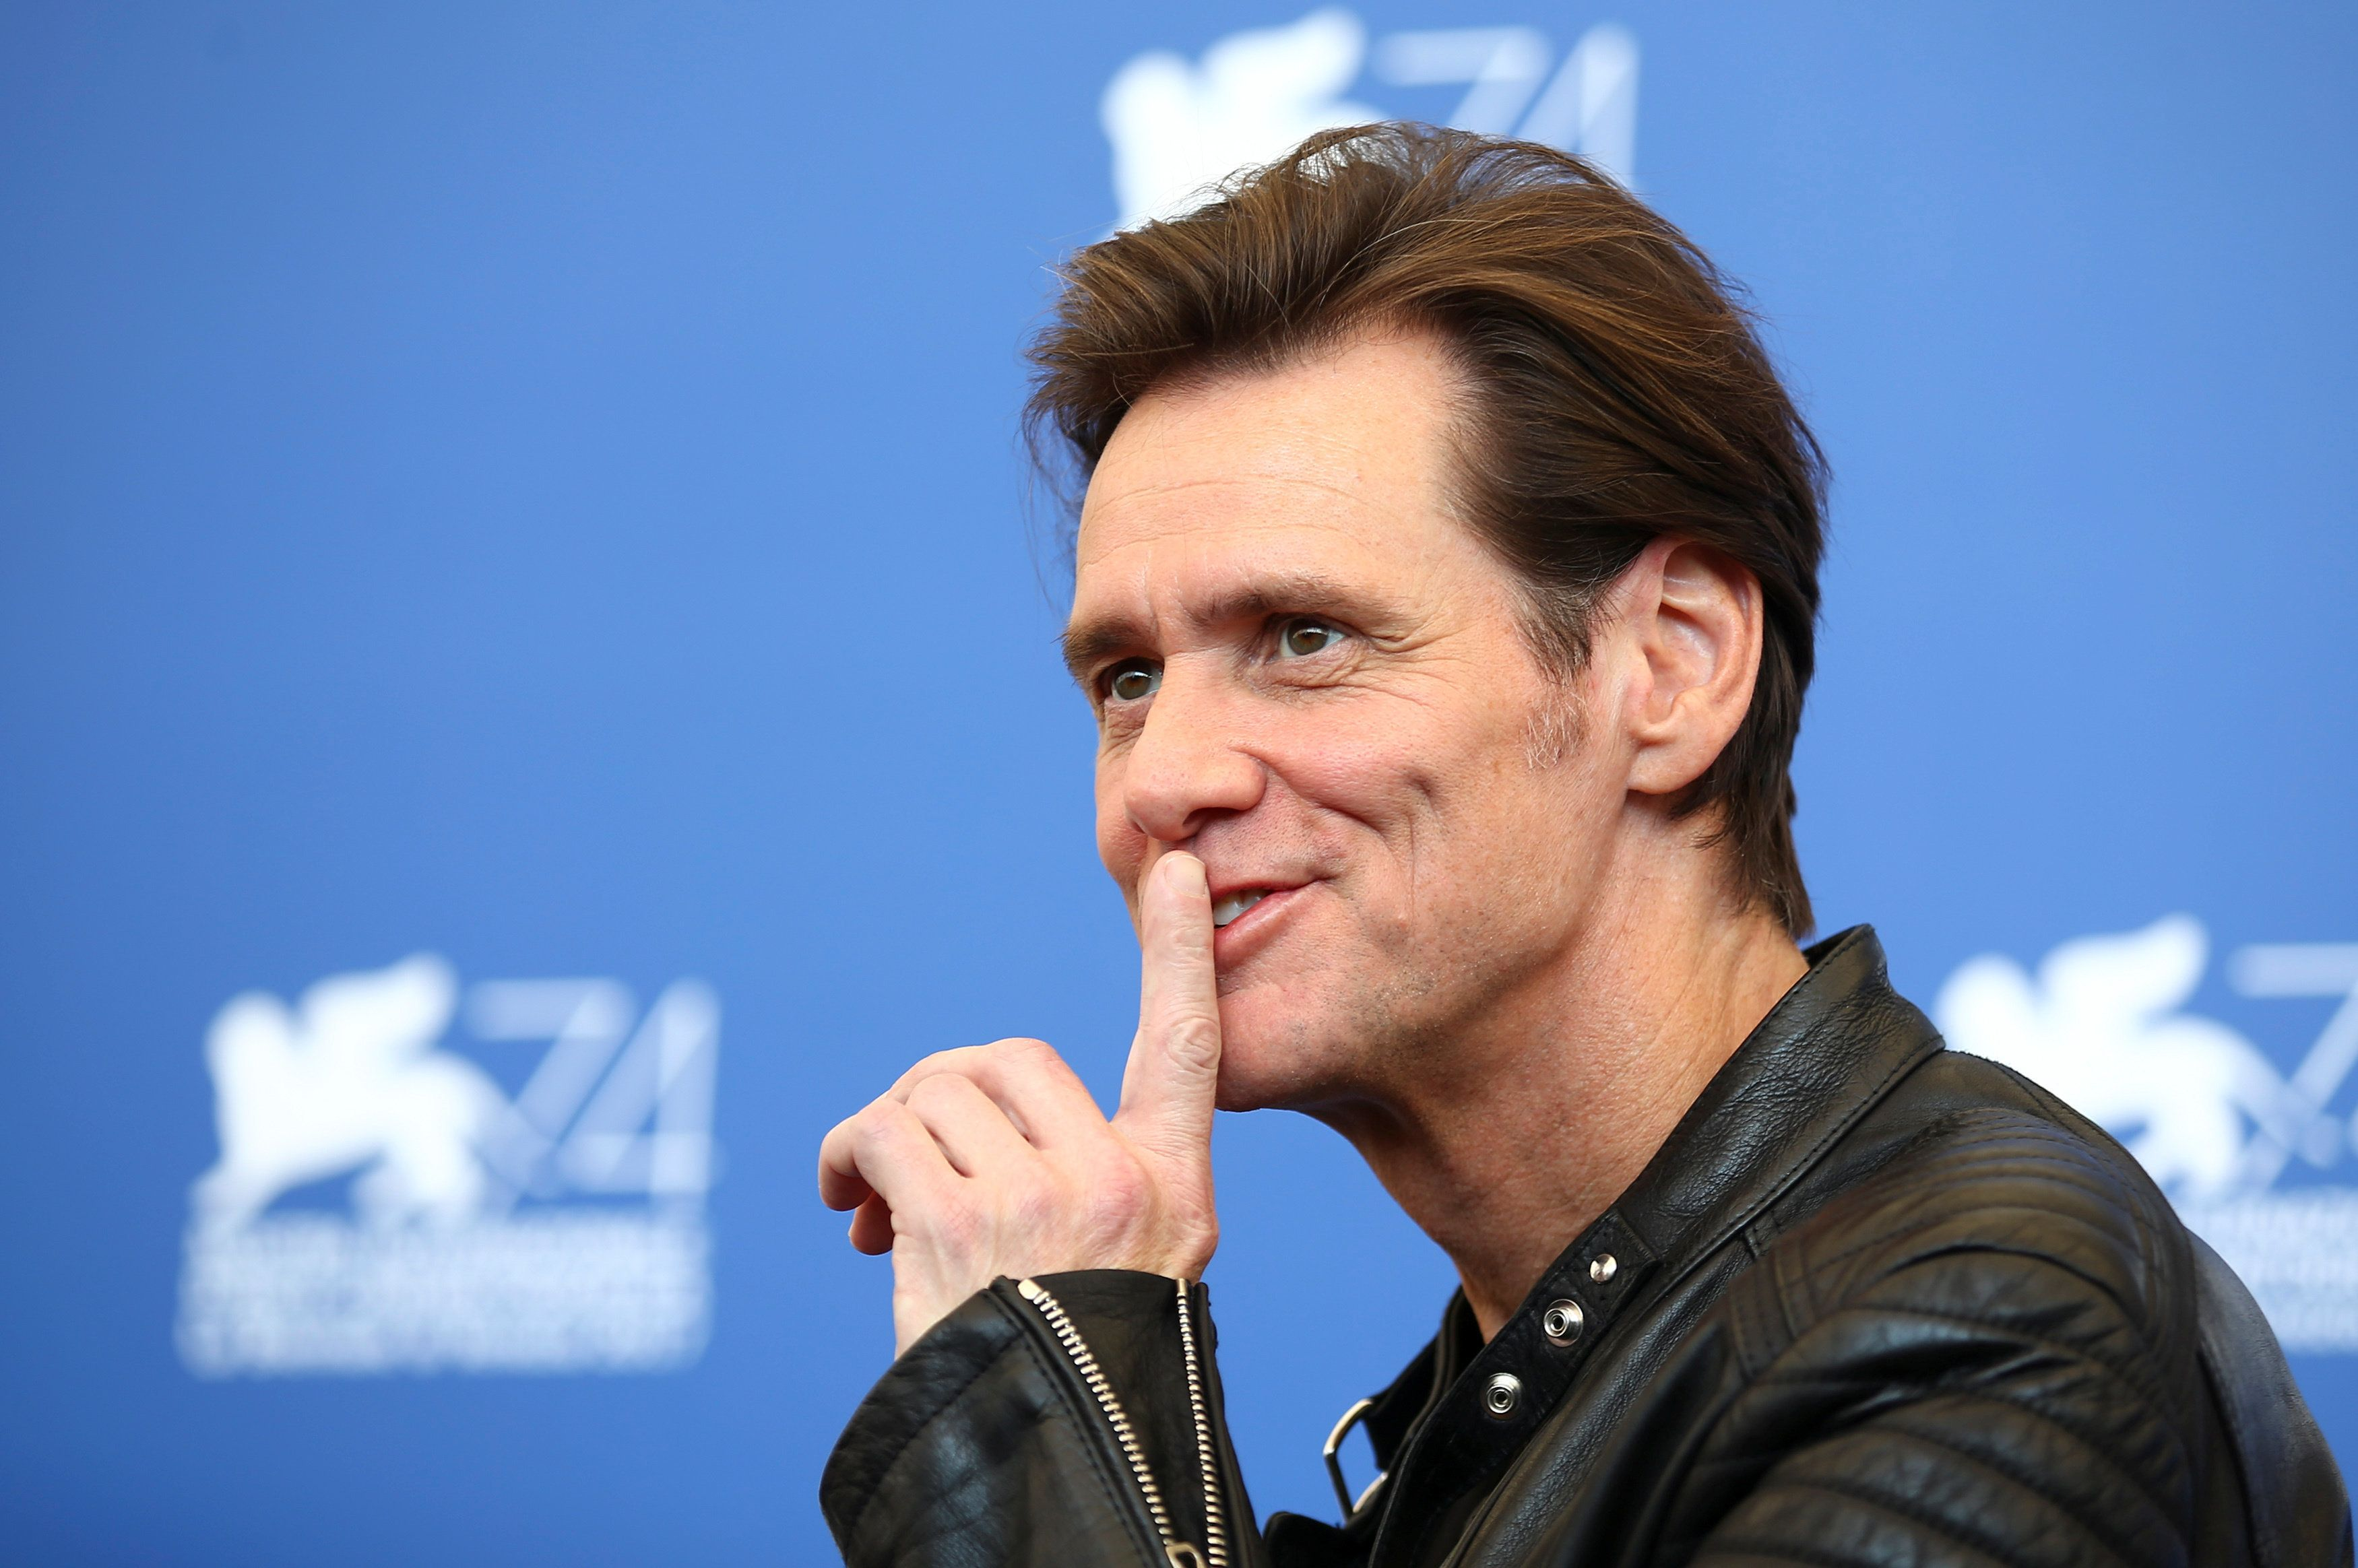 """Actor Jim Carrey poses during a photocall for the movie """"Jim & Andy: The Great Beyond"""" at the 74th Venice Film Festival in Venice, Italy September 5, 2017. REUTERS/Alessandro Bianchi"""